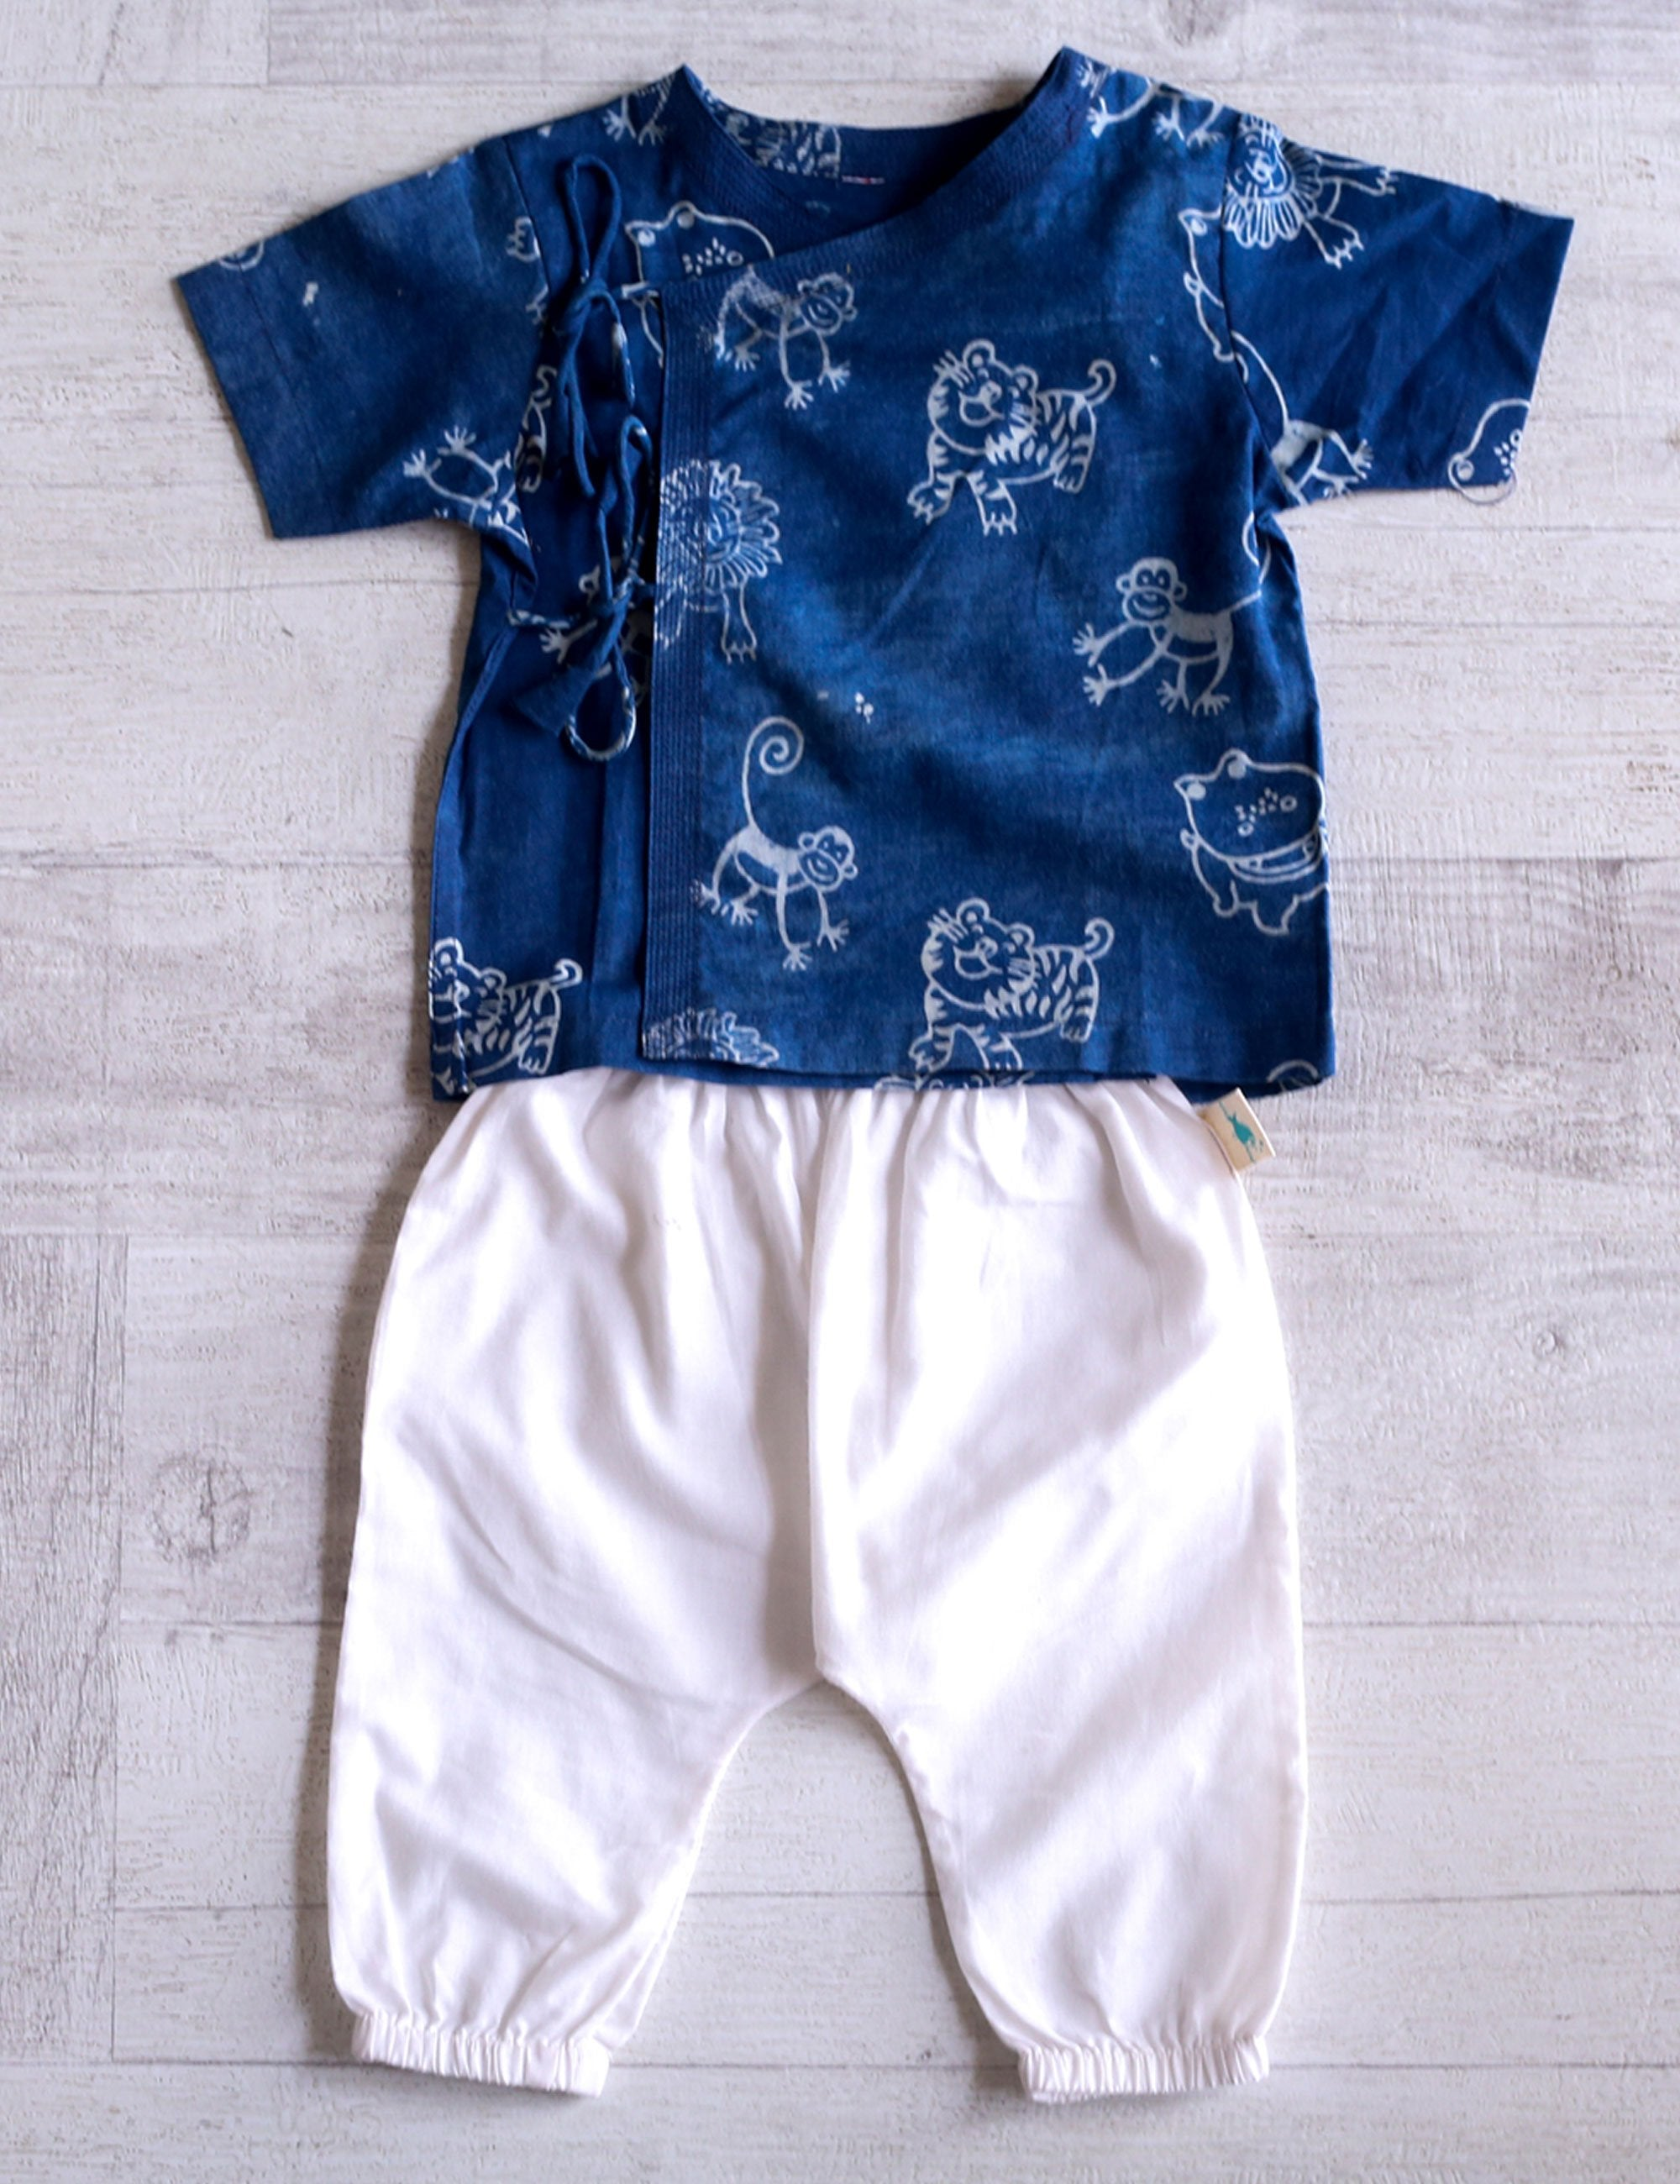 Top with Pajama In White and Blue Colour for Girls and Boys